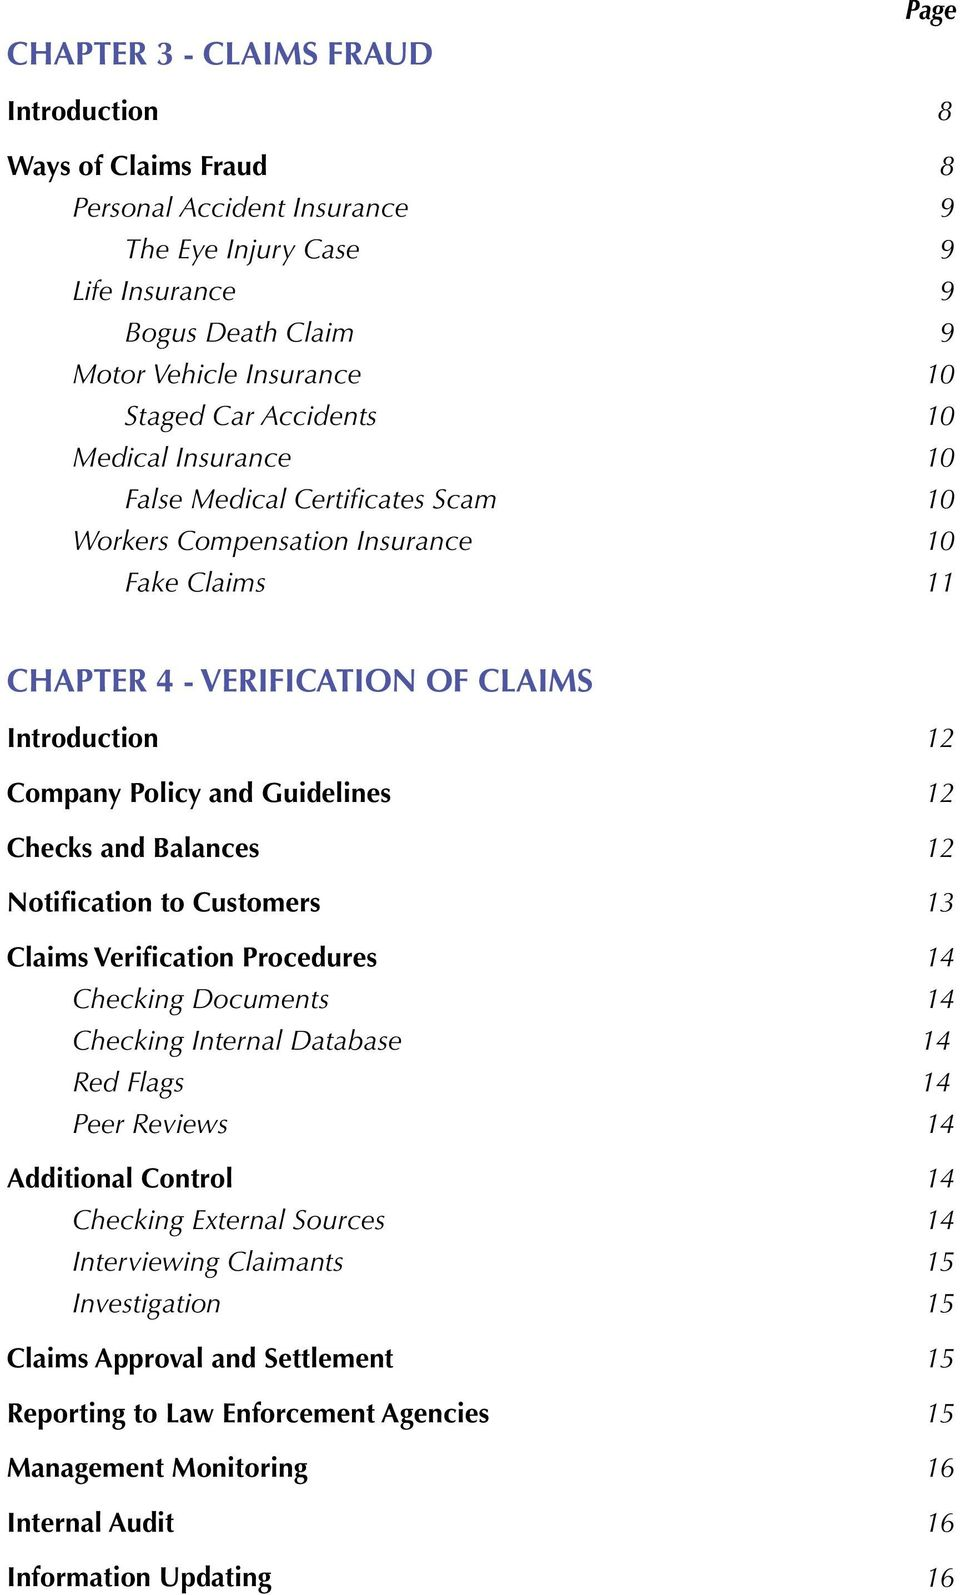 12 Checks and Balances 12 Notification to Customers 13 Claims Verification Procedures 14 Checking Documents 14 Checking Internal Database 14 Red Flags 14 Peer Reviews 14 Additional Control 14